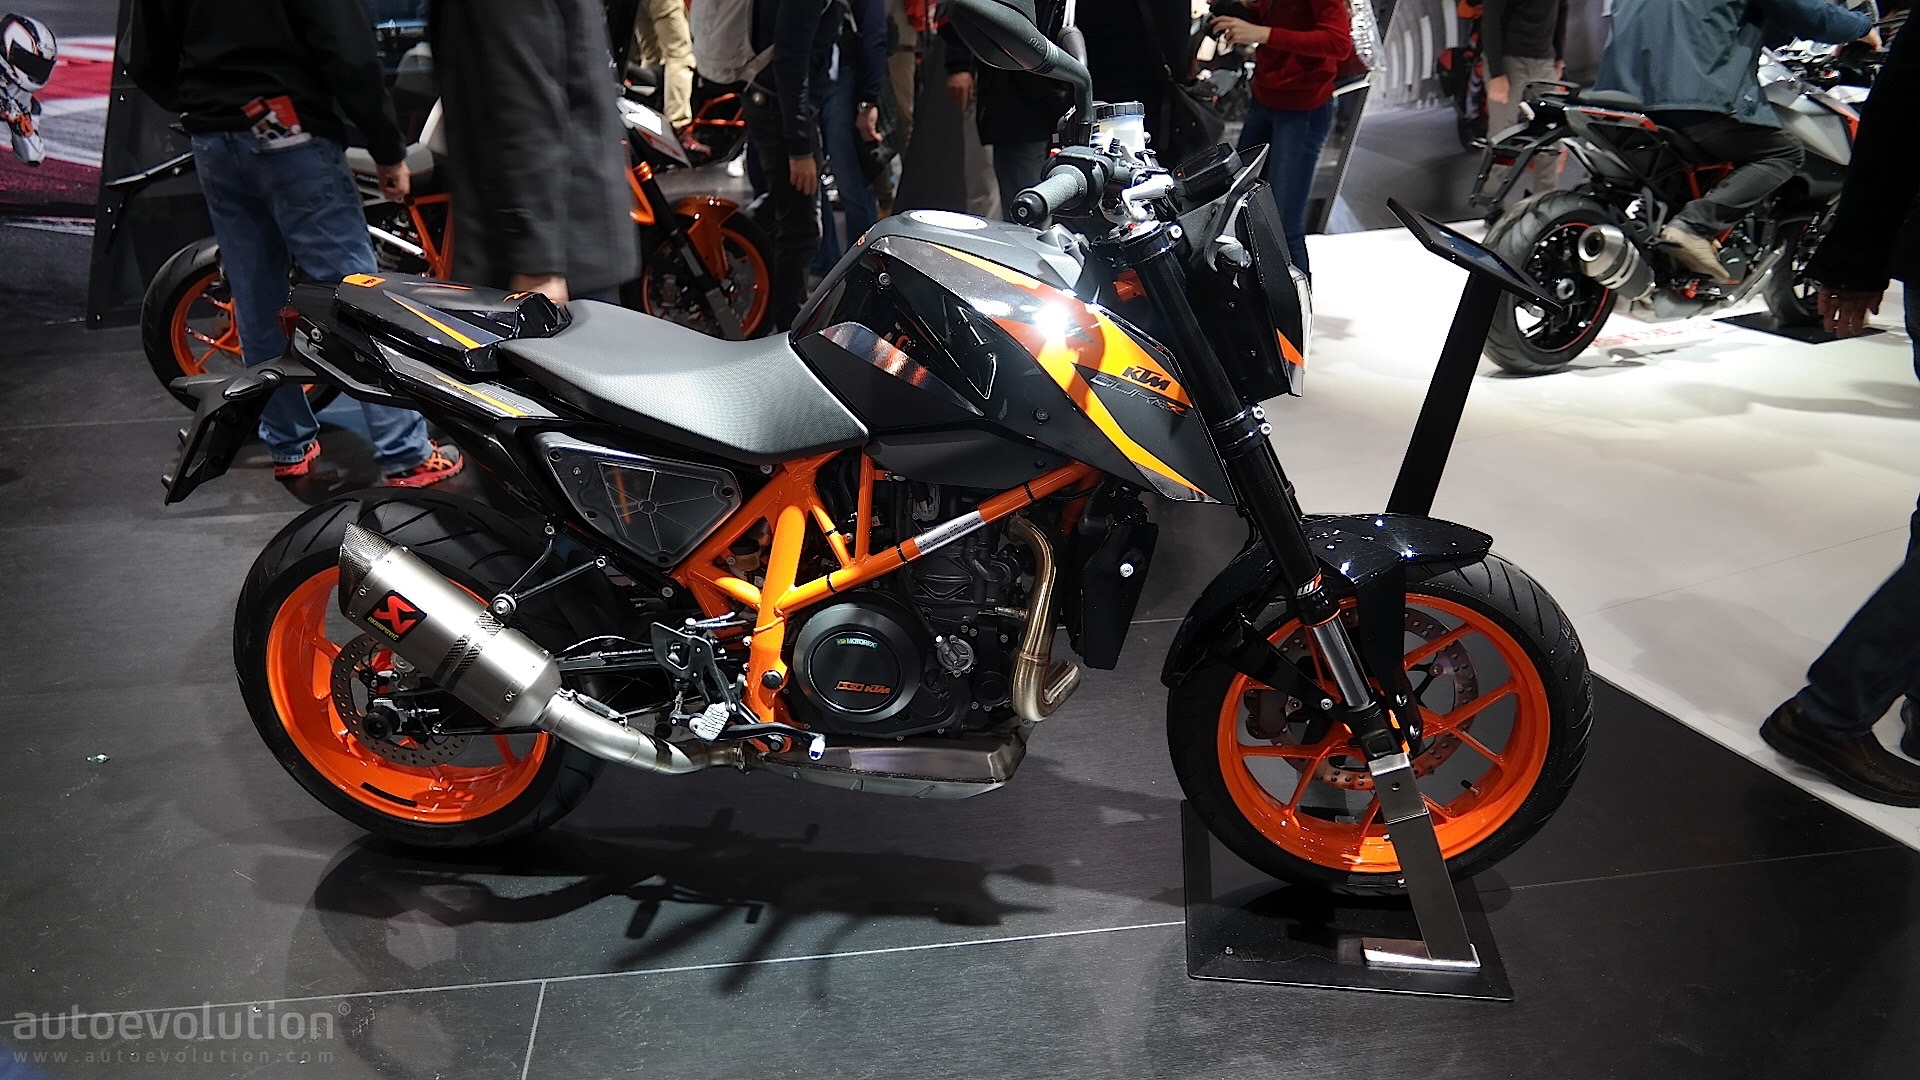 eicma 2015: ktm duke 690, 690r get more power, extra goodies for